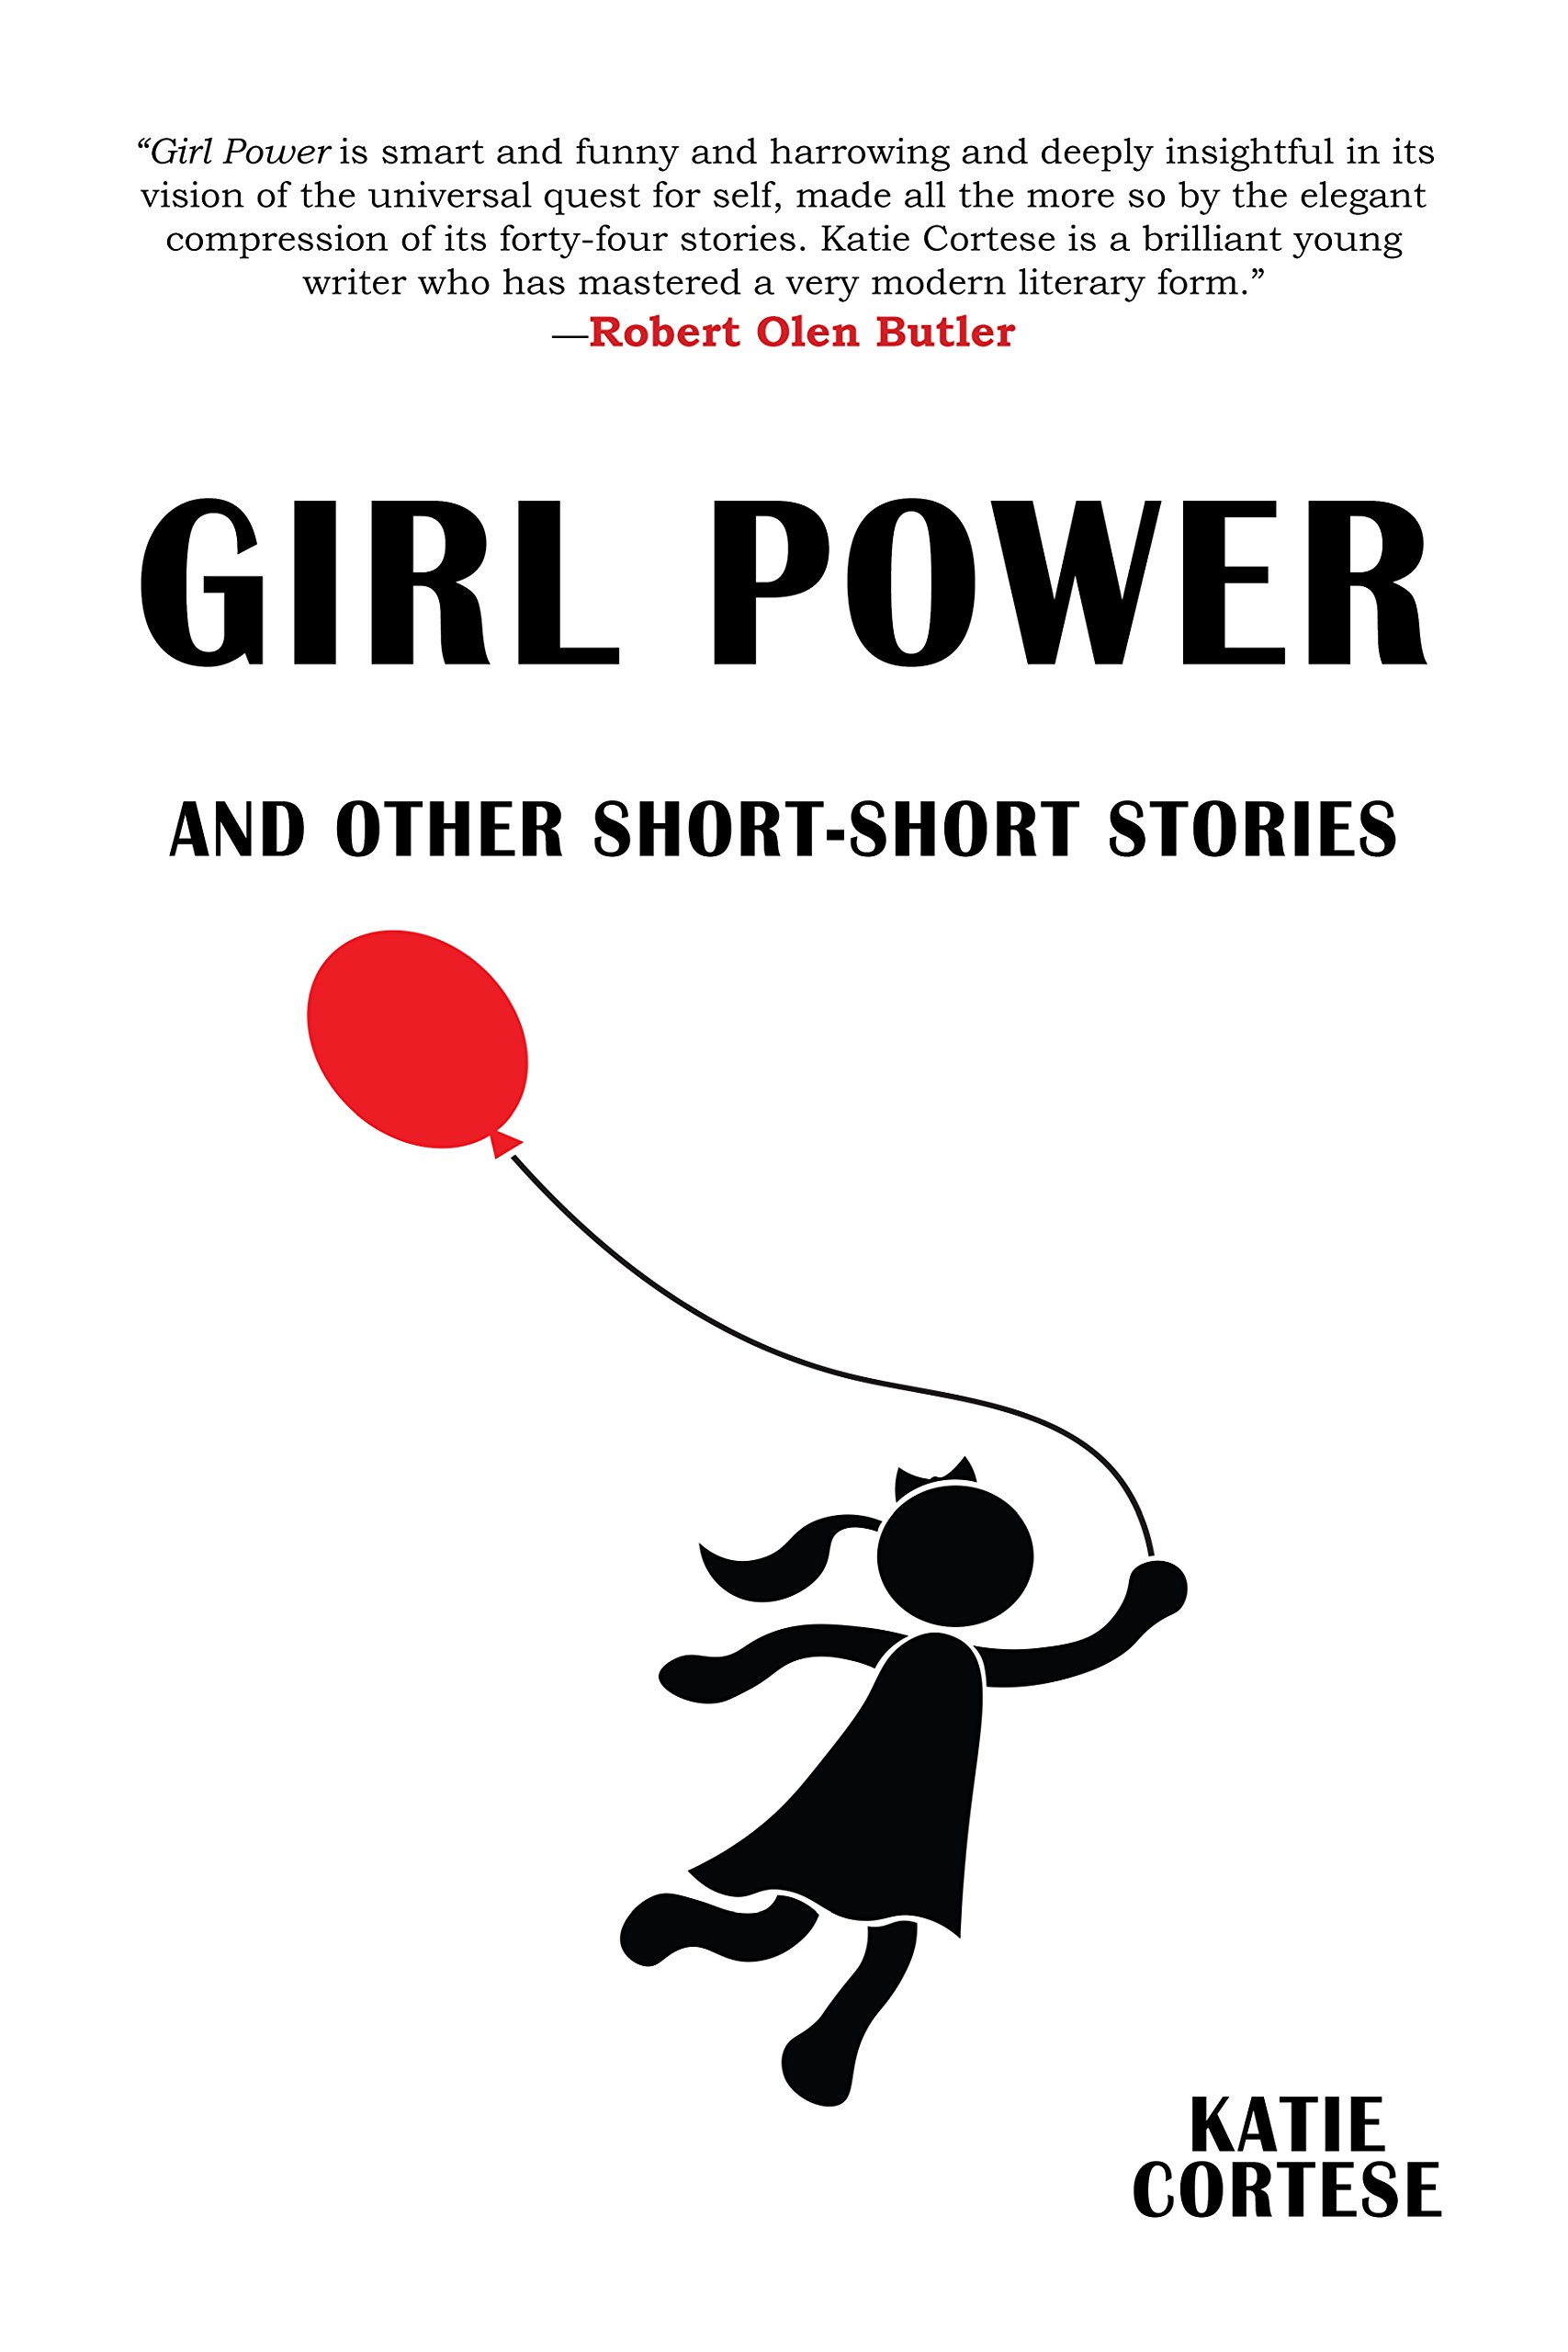 Girl Power and Other Short-Short Stories: Katie Cortese